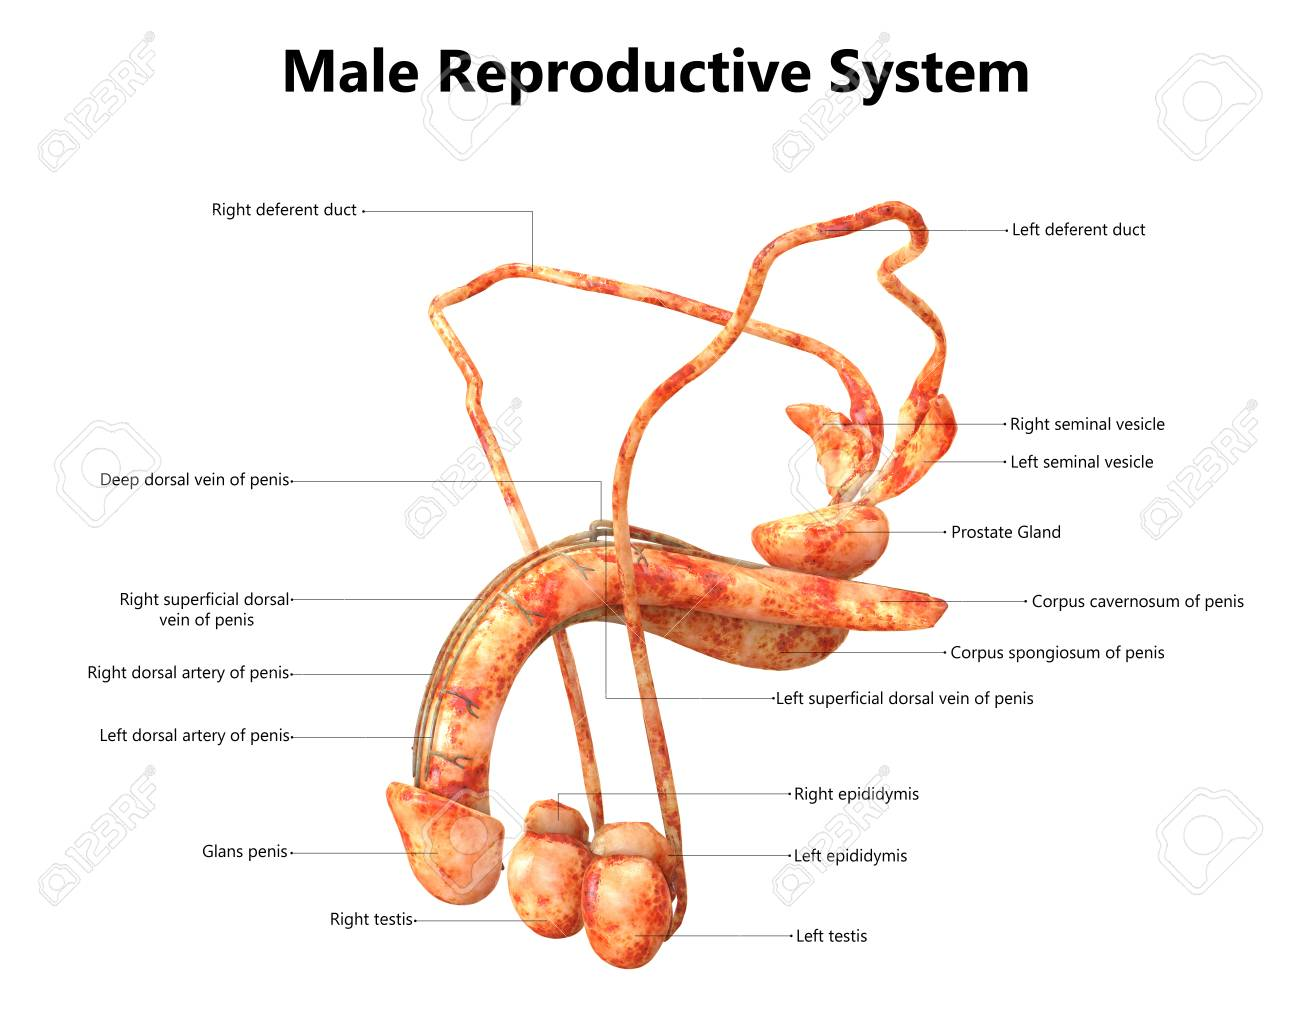 Male Reproductive System With Labels Anatomy Stock Photo, Picture ...